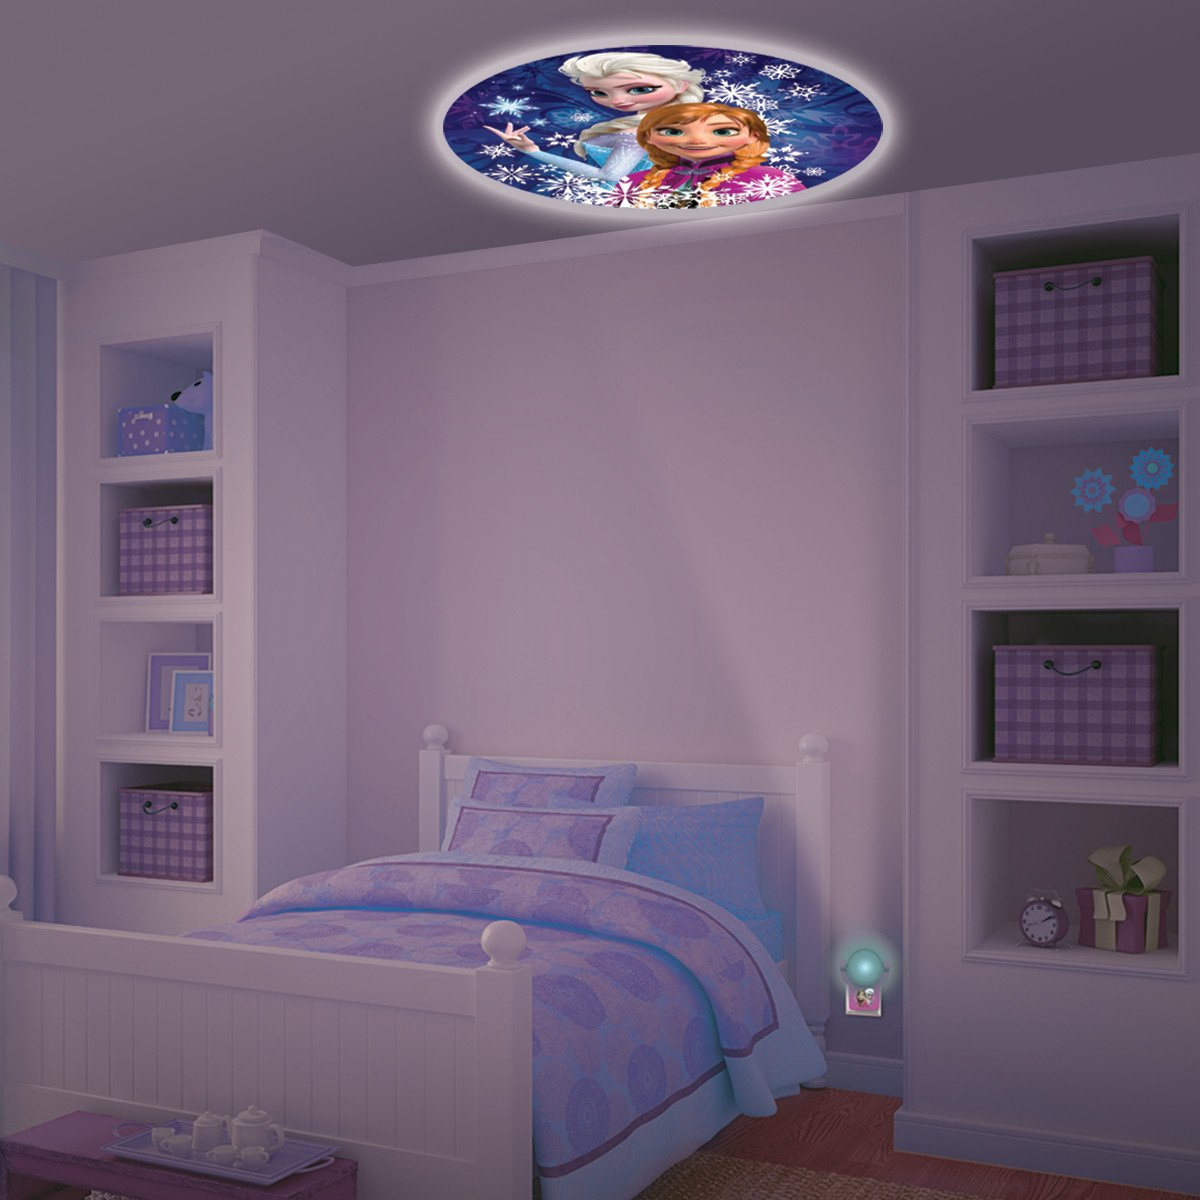 Projector Night Lights Disney Frozen LED Kids Boys Girls Bedroom Wall Ceiling eBay